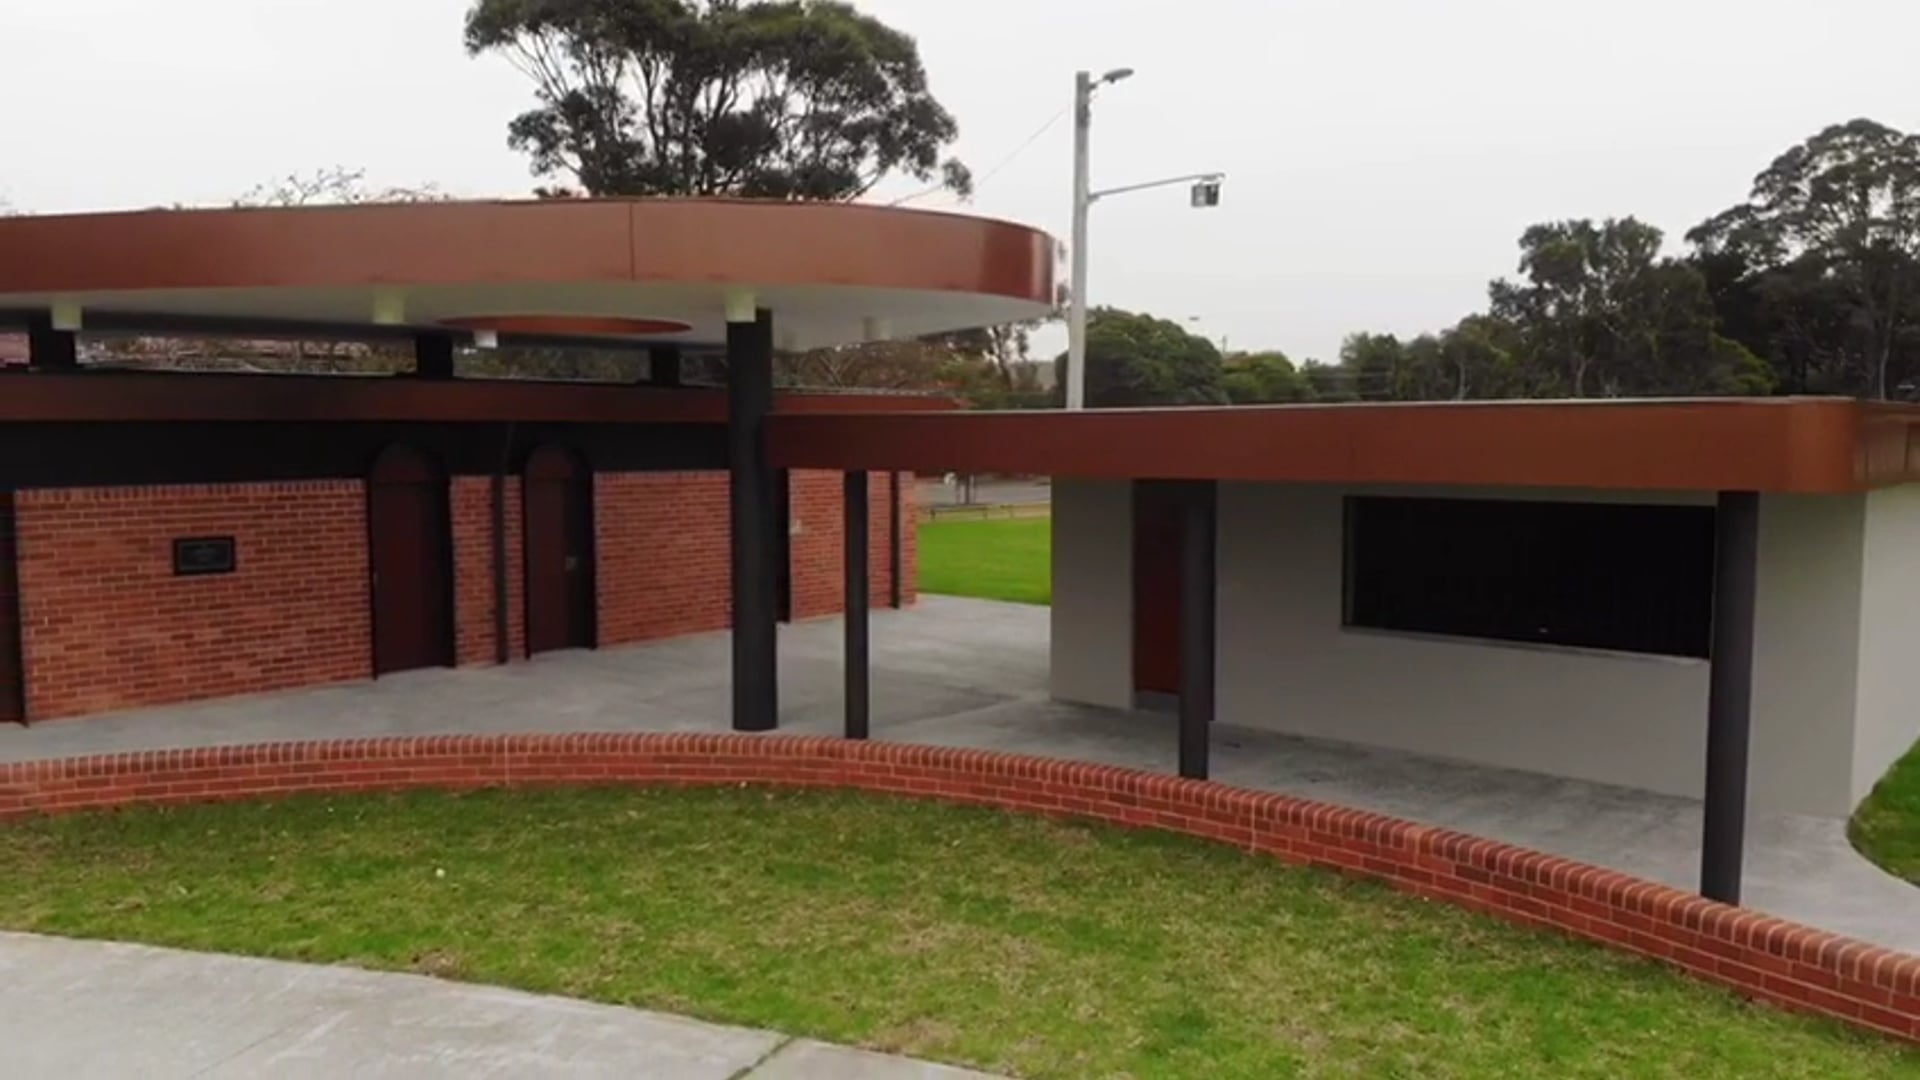 Rowland Park Amenities and Canteen by Hibernian Contracting